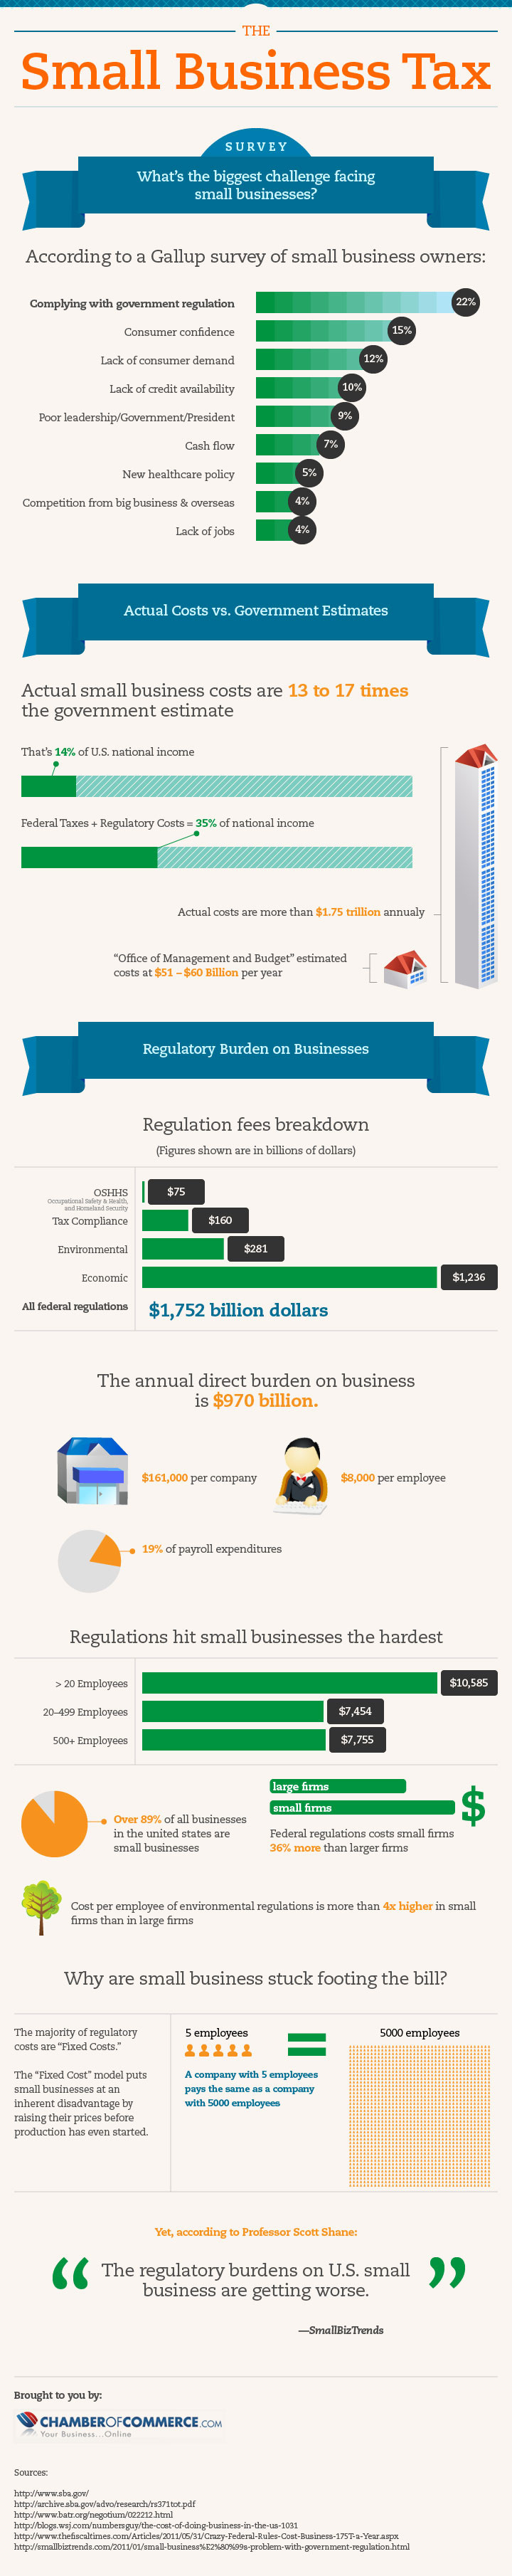 Photo of The Small Business Tax Infographic